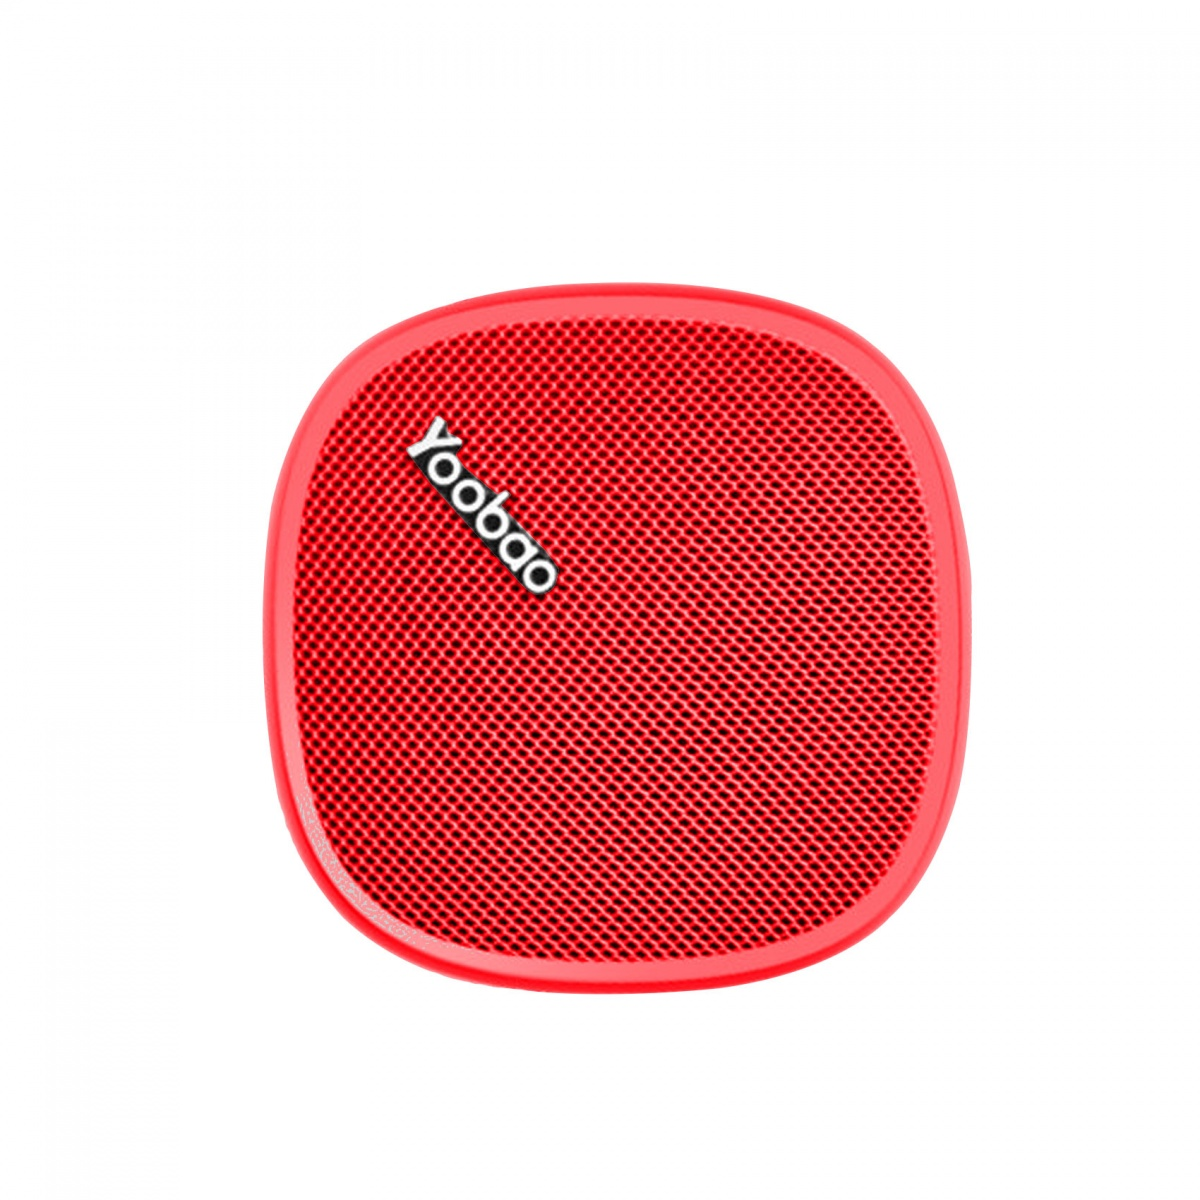 Yoobao M1 Portable Bluetooth Speaker - Red